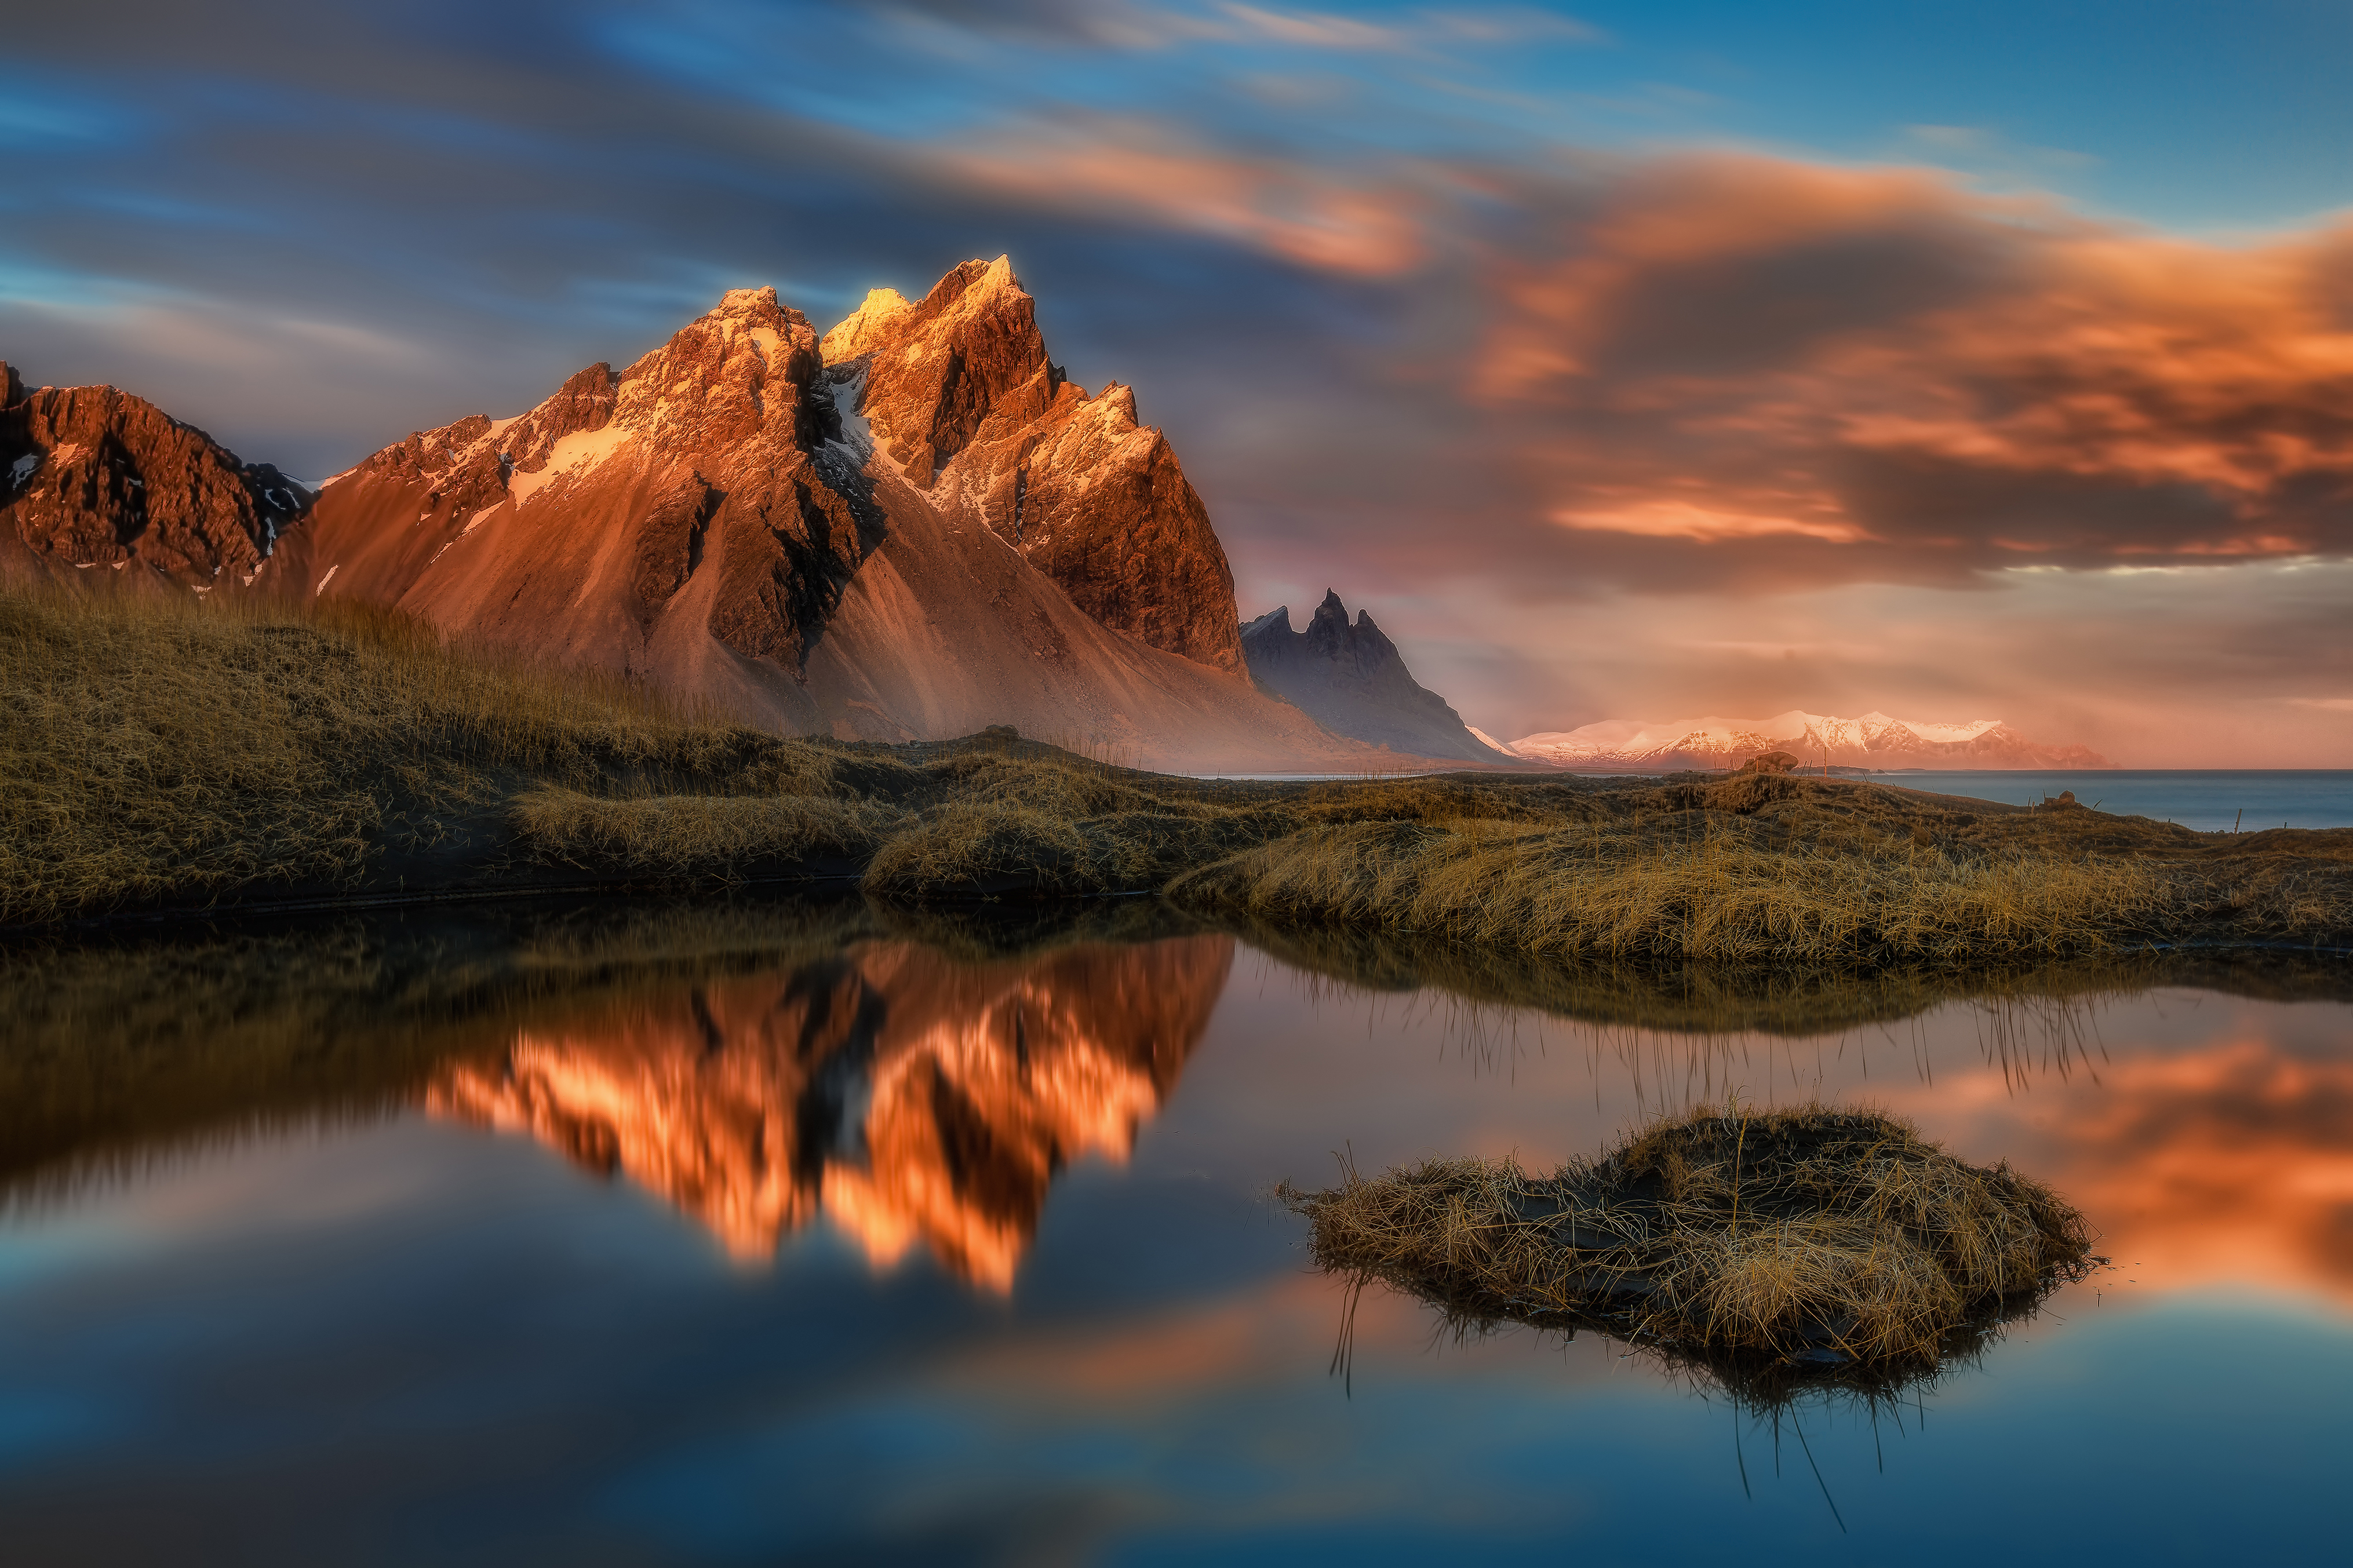 23 Landscape Photography Tips From A Pro